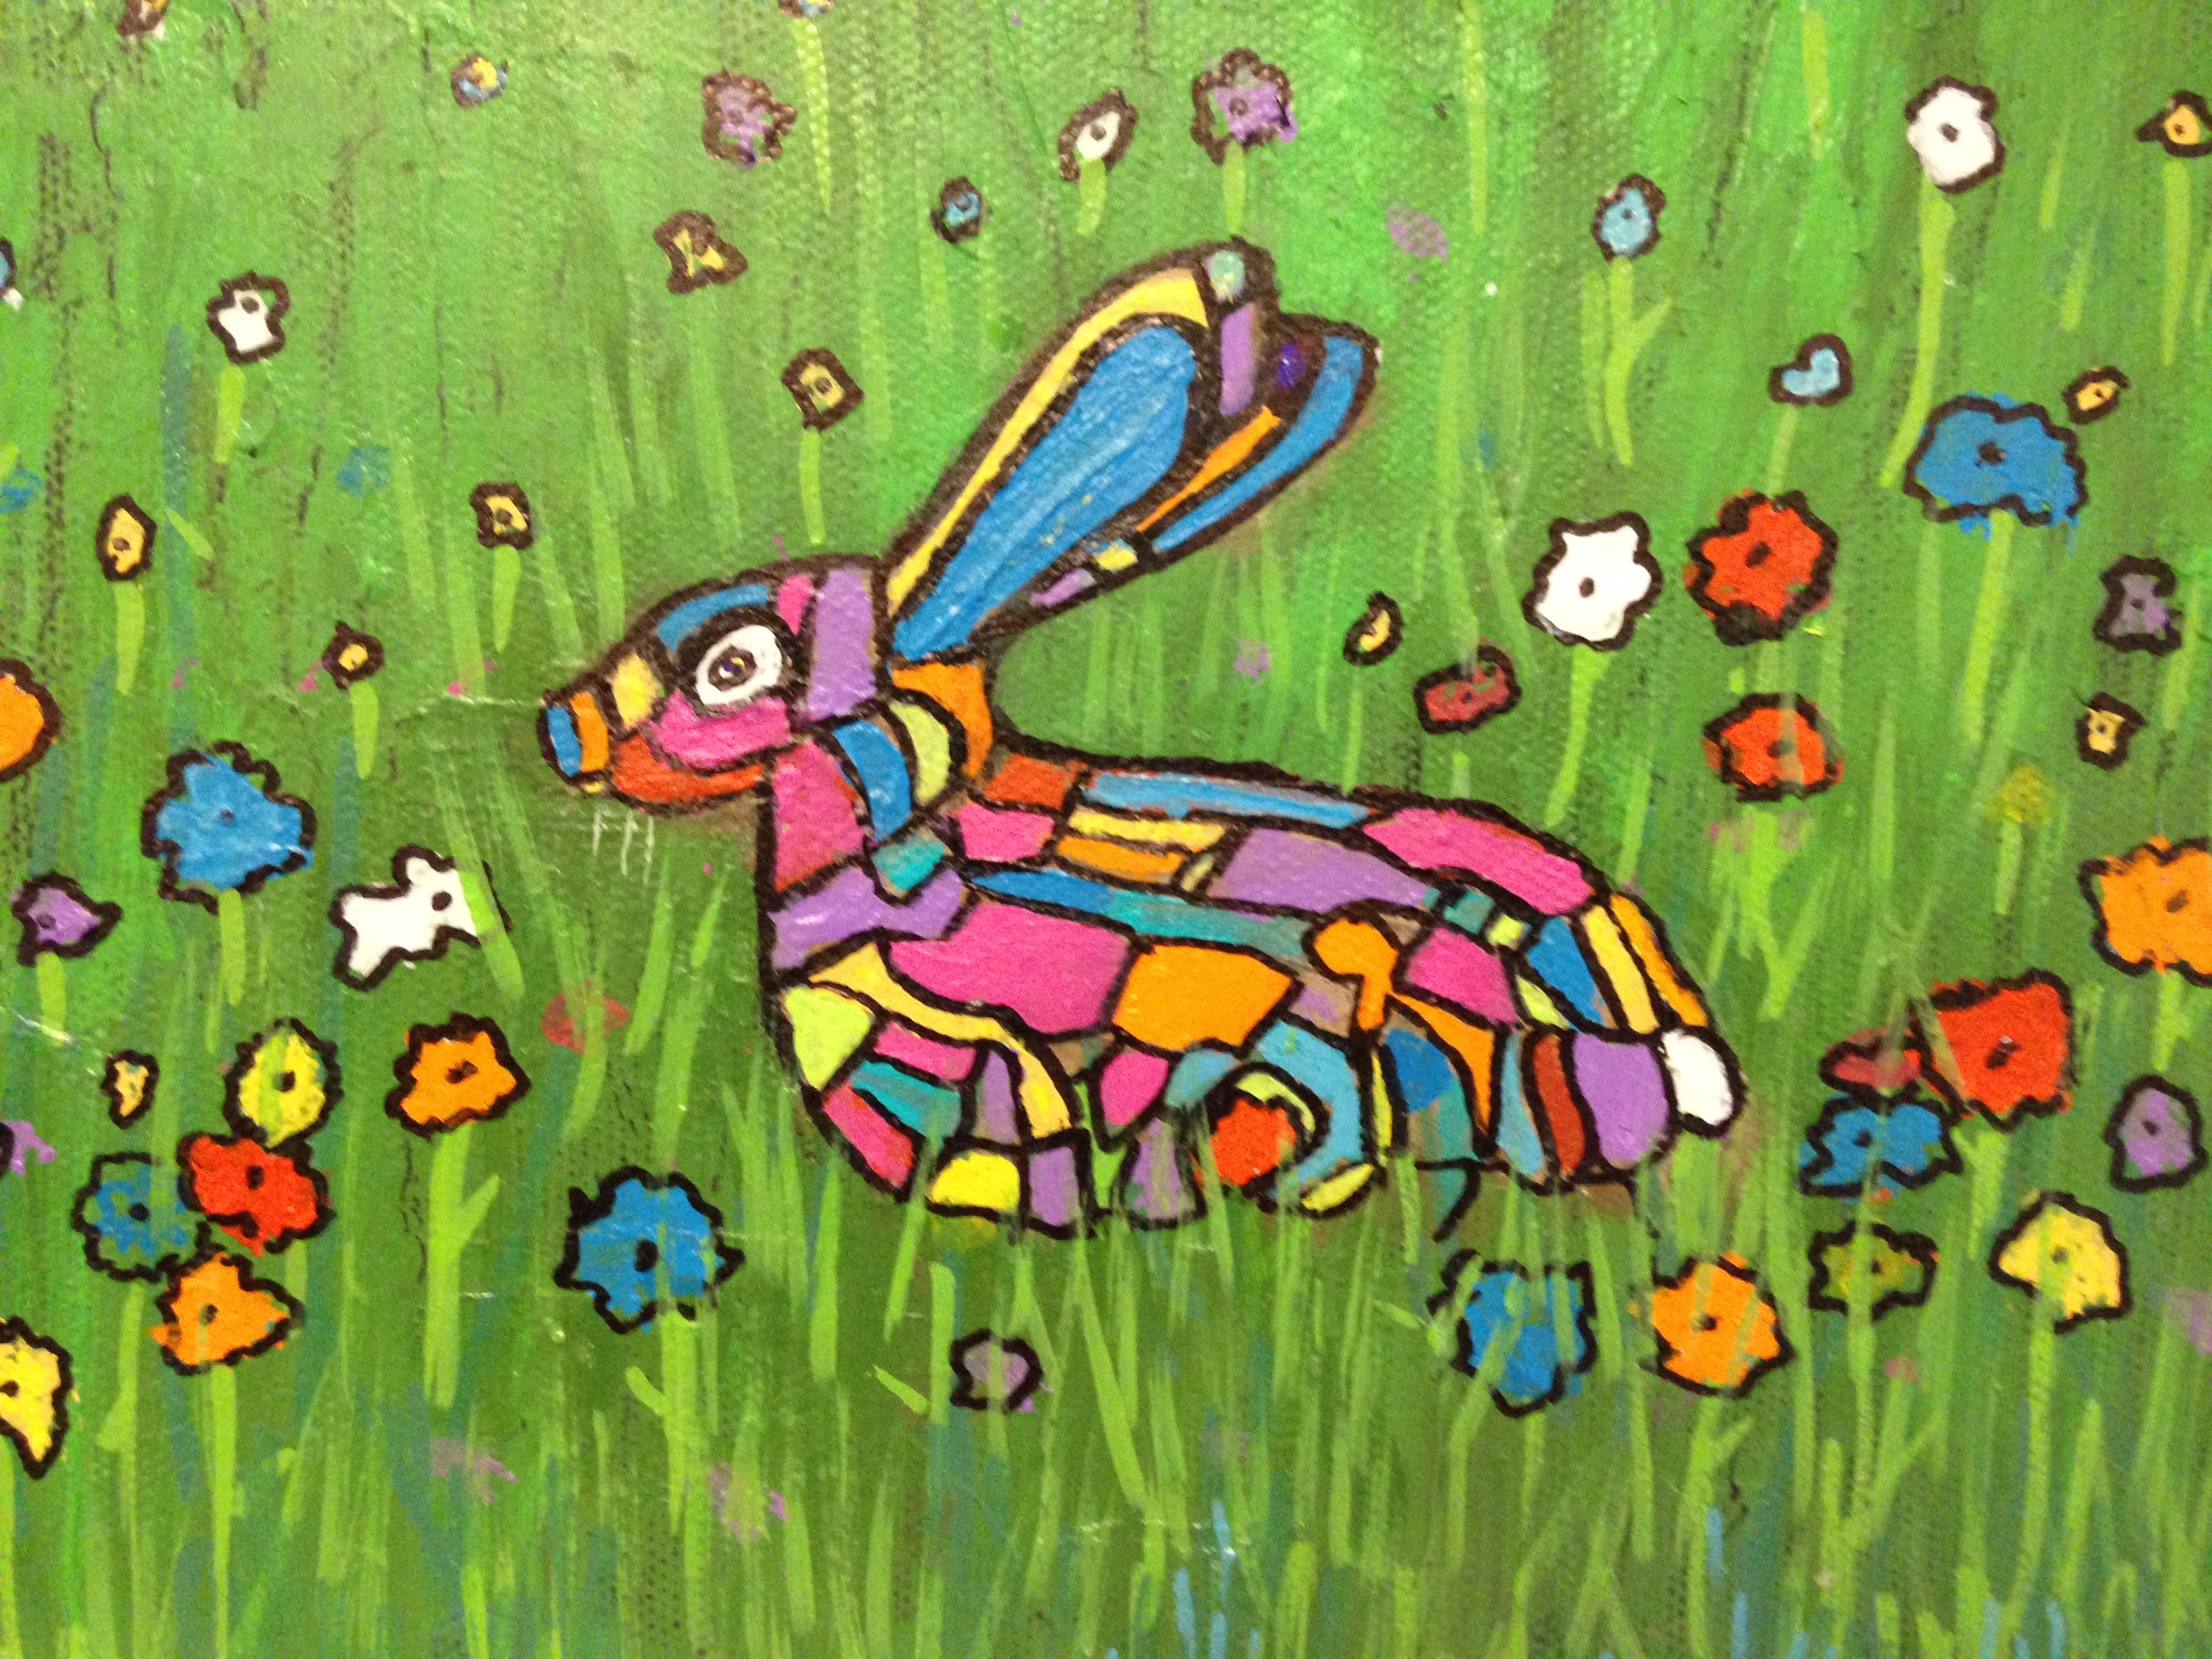 Roseanne Snyder Bunny in the Grass 8x10 canvas.JPG